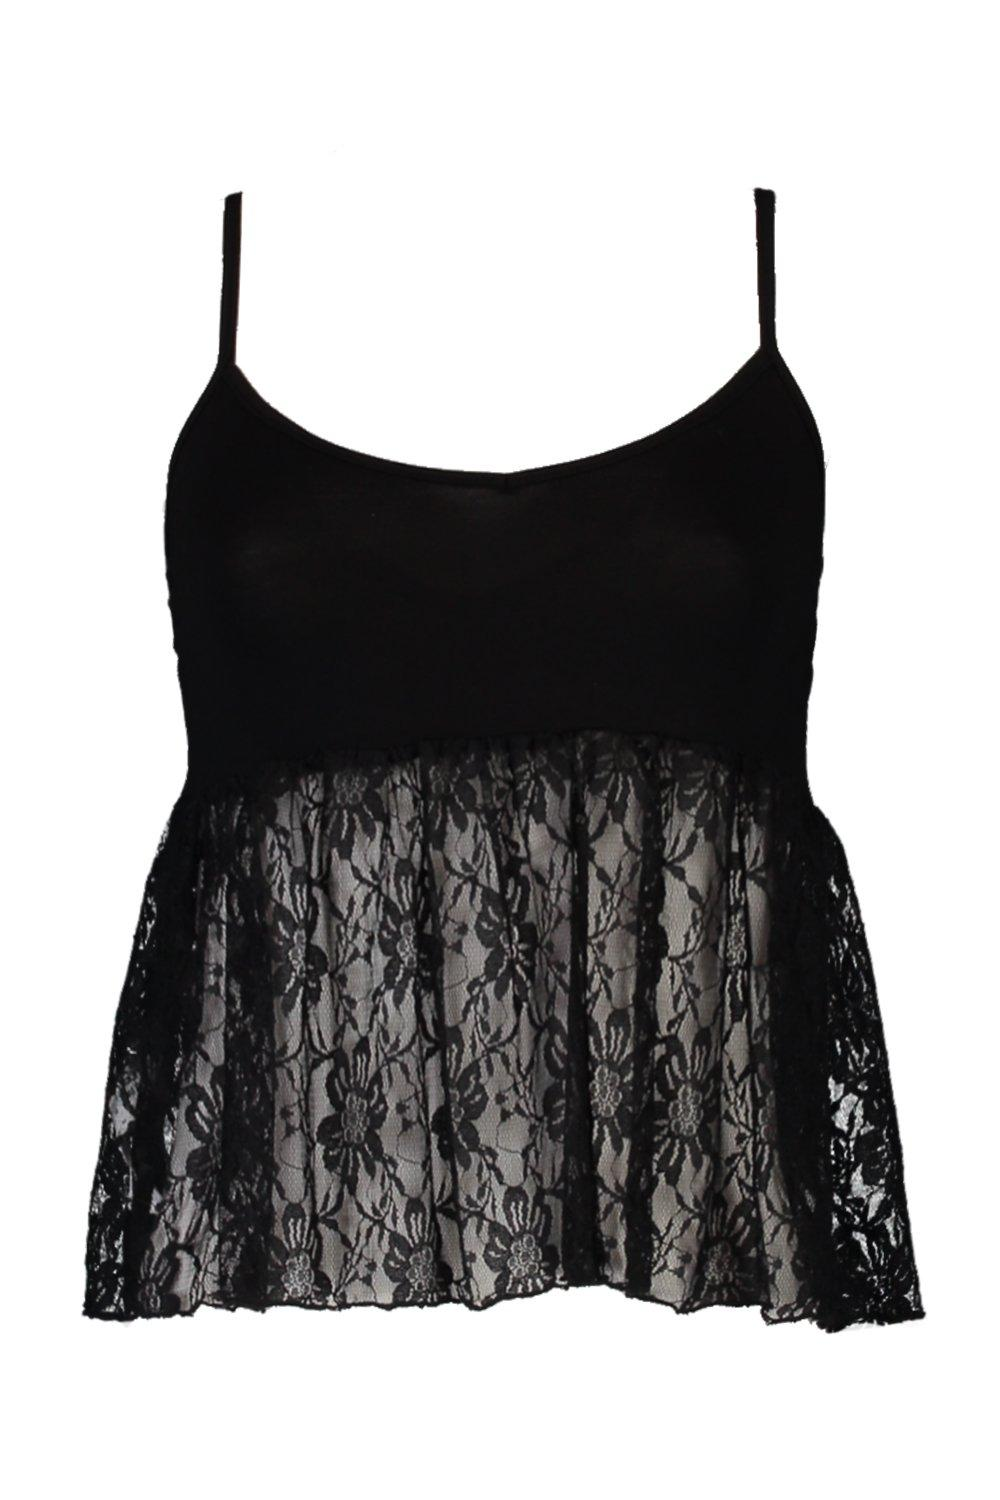 NEW-Boohoo-Womens-Petite-Rhiannon-Lace-Peplum-Cami-in